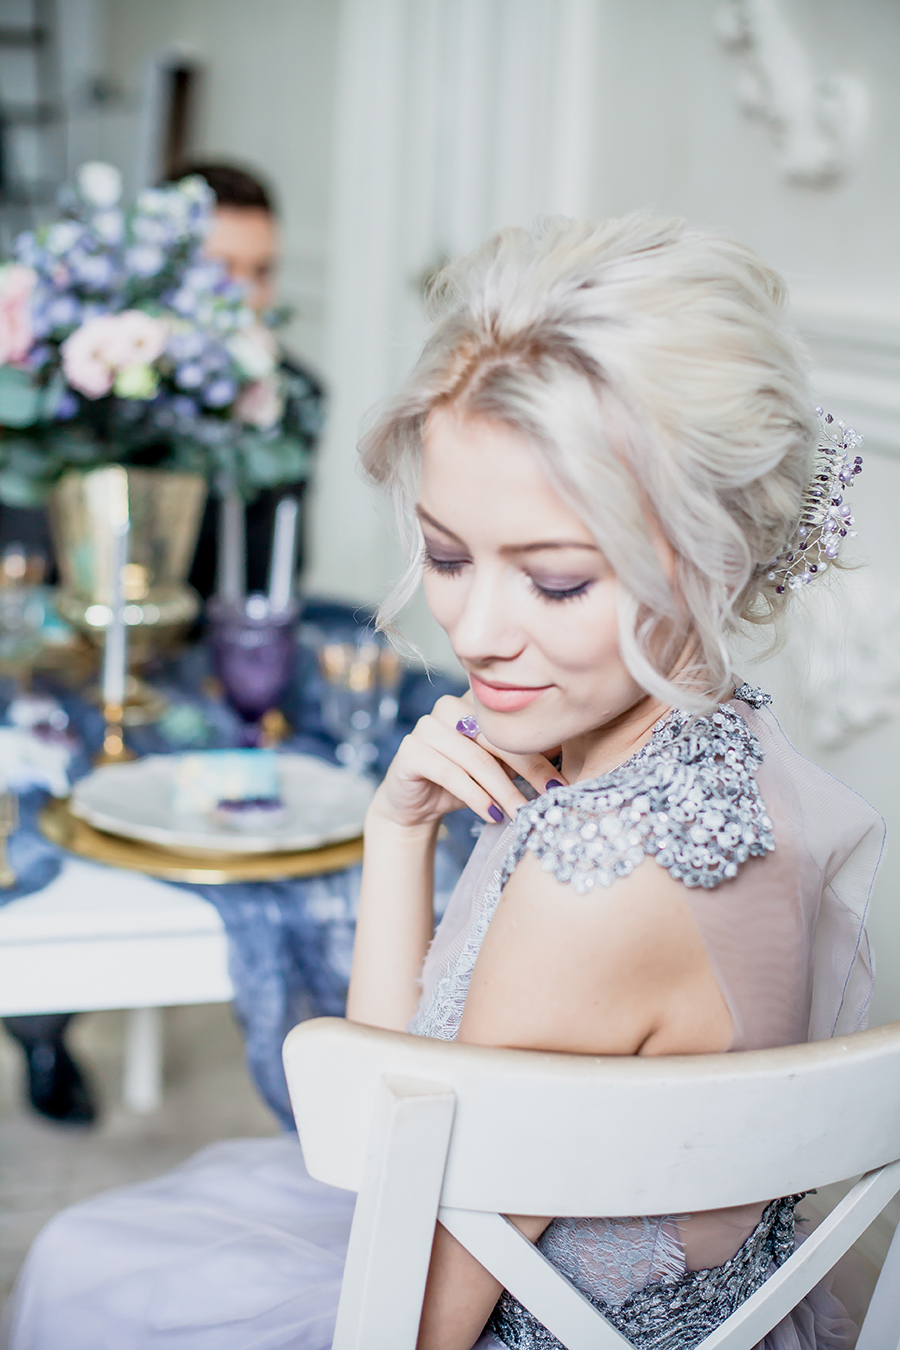 romantic winter wedding inspiration - bride in chair posing for photo